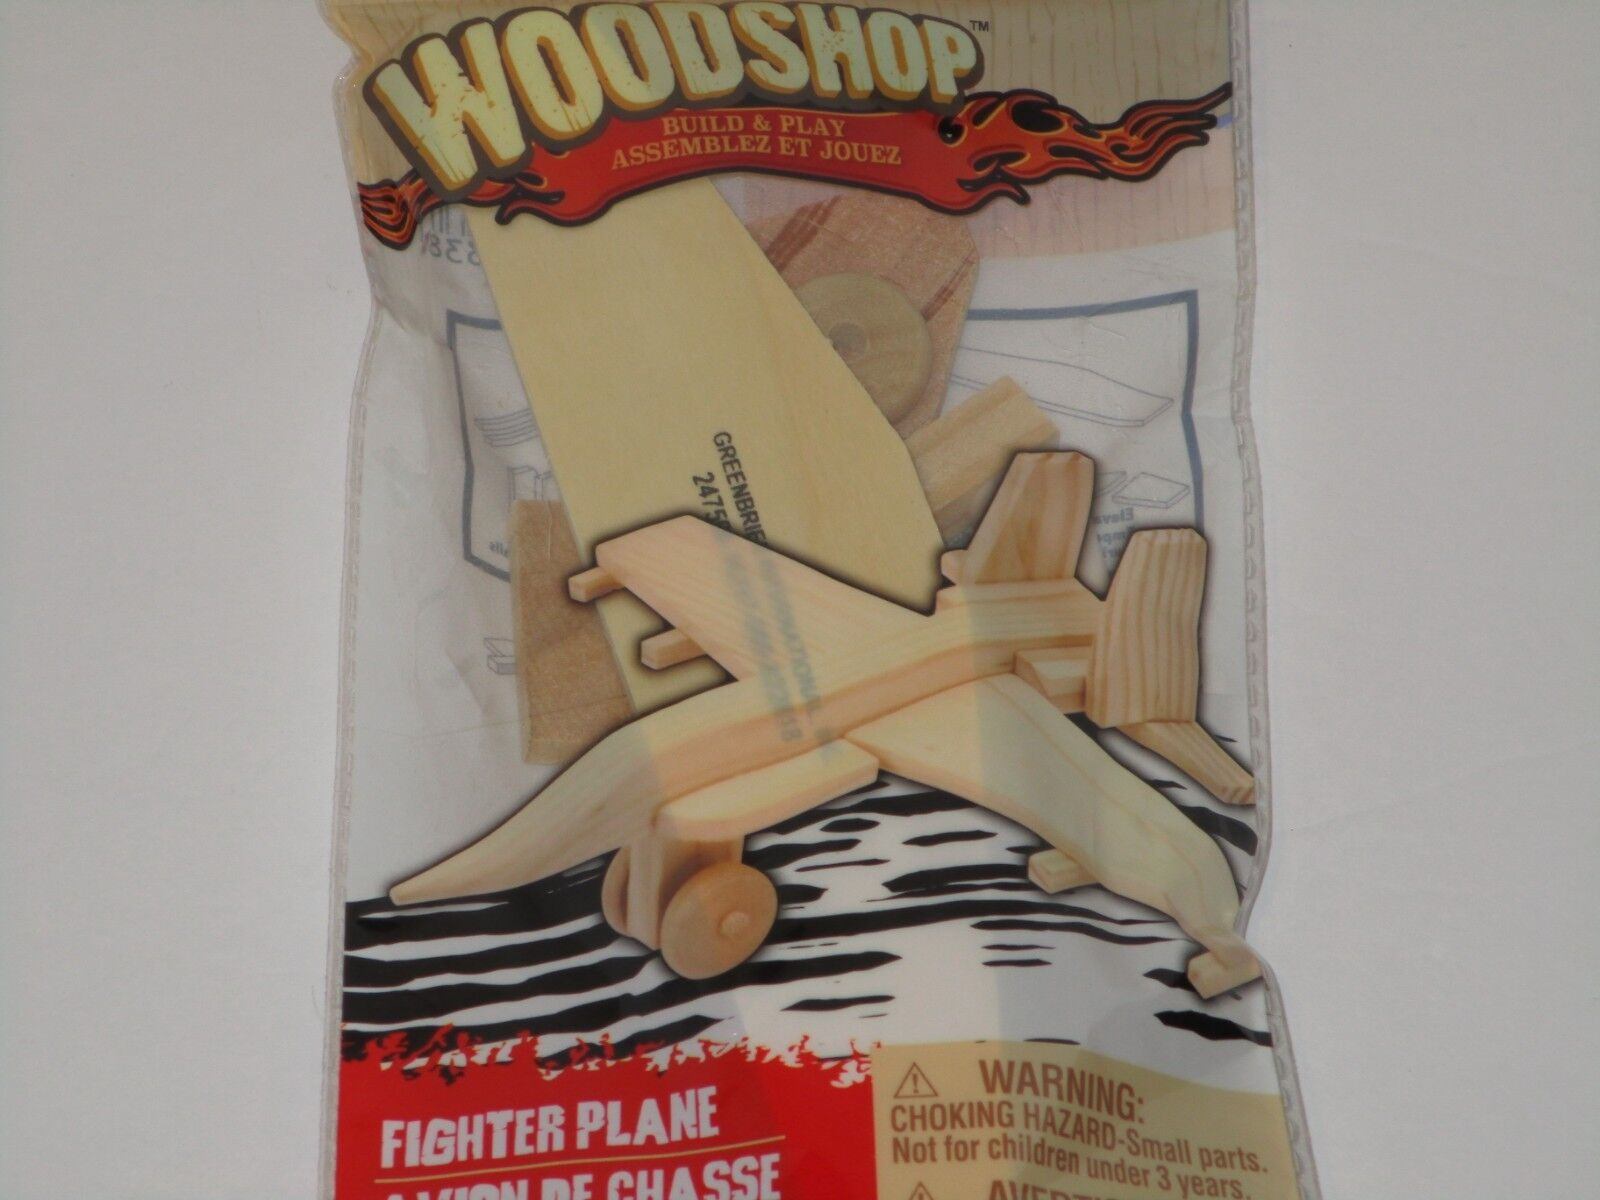 Wood Shop Model Kit - YOU Build Real Wooden AIRPLANE Fun Toy